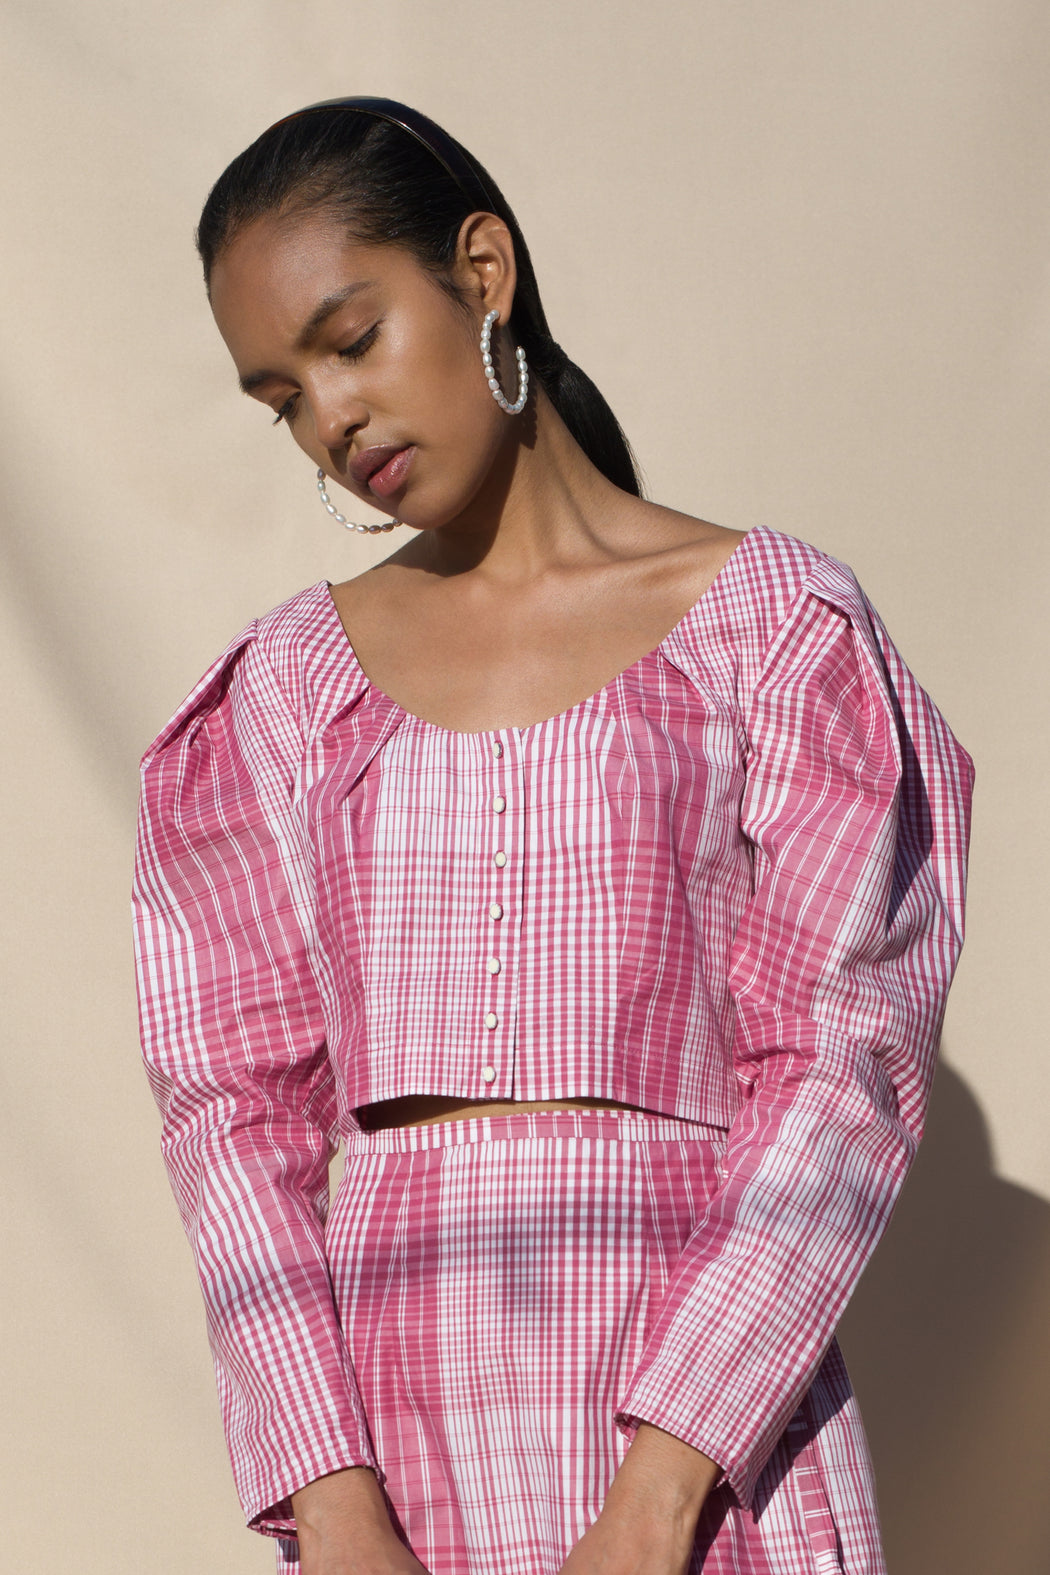 Paros Blouse - Radish Plaid Poplin